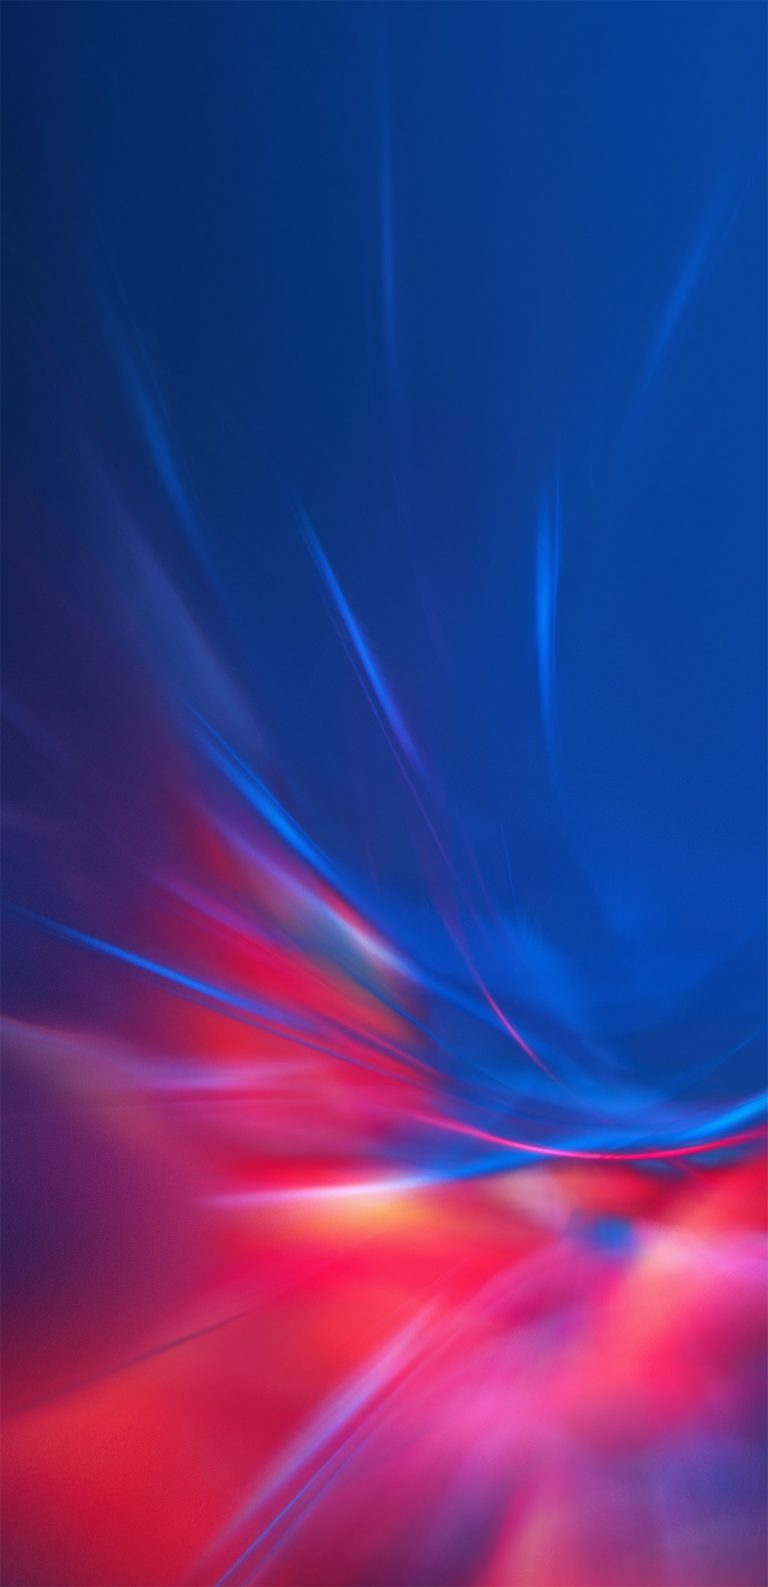 meizu 16s wallpaper droidviews 03 768x1587